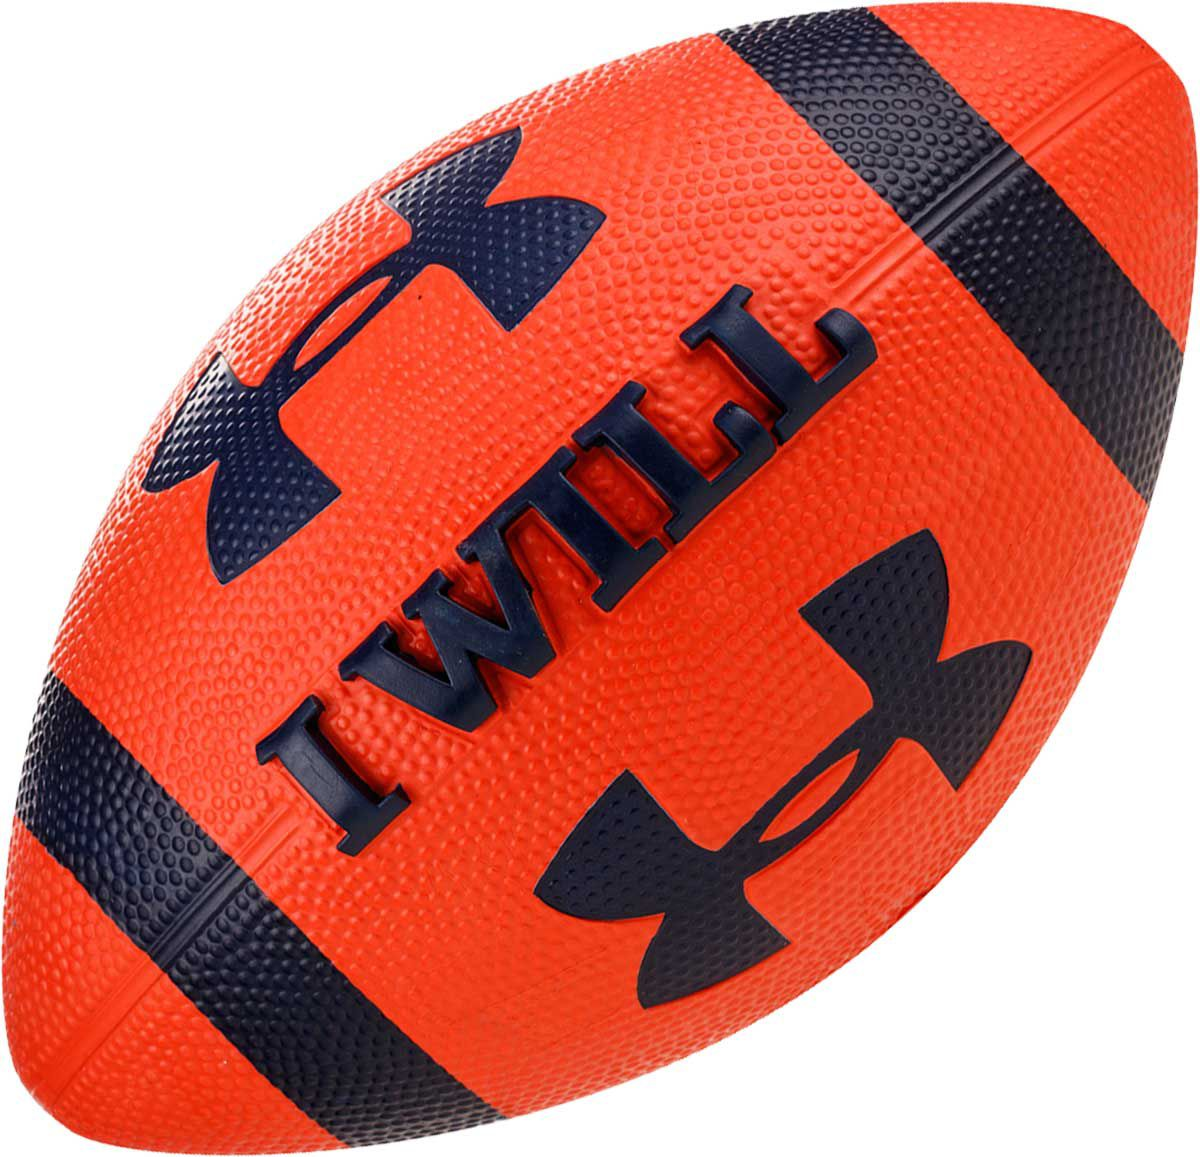 under armour 595 basketball. product image · under armour i will mini football 595 basketball